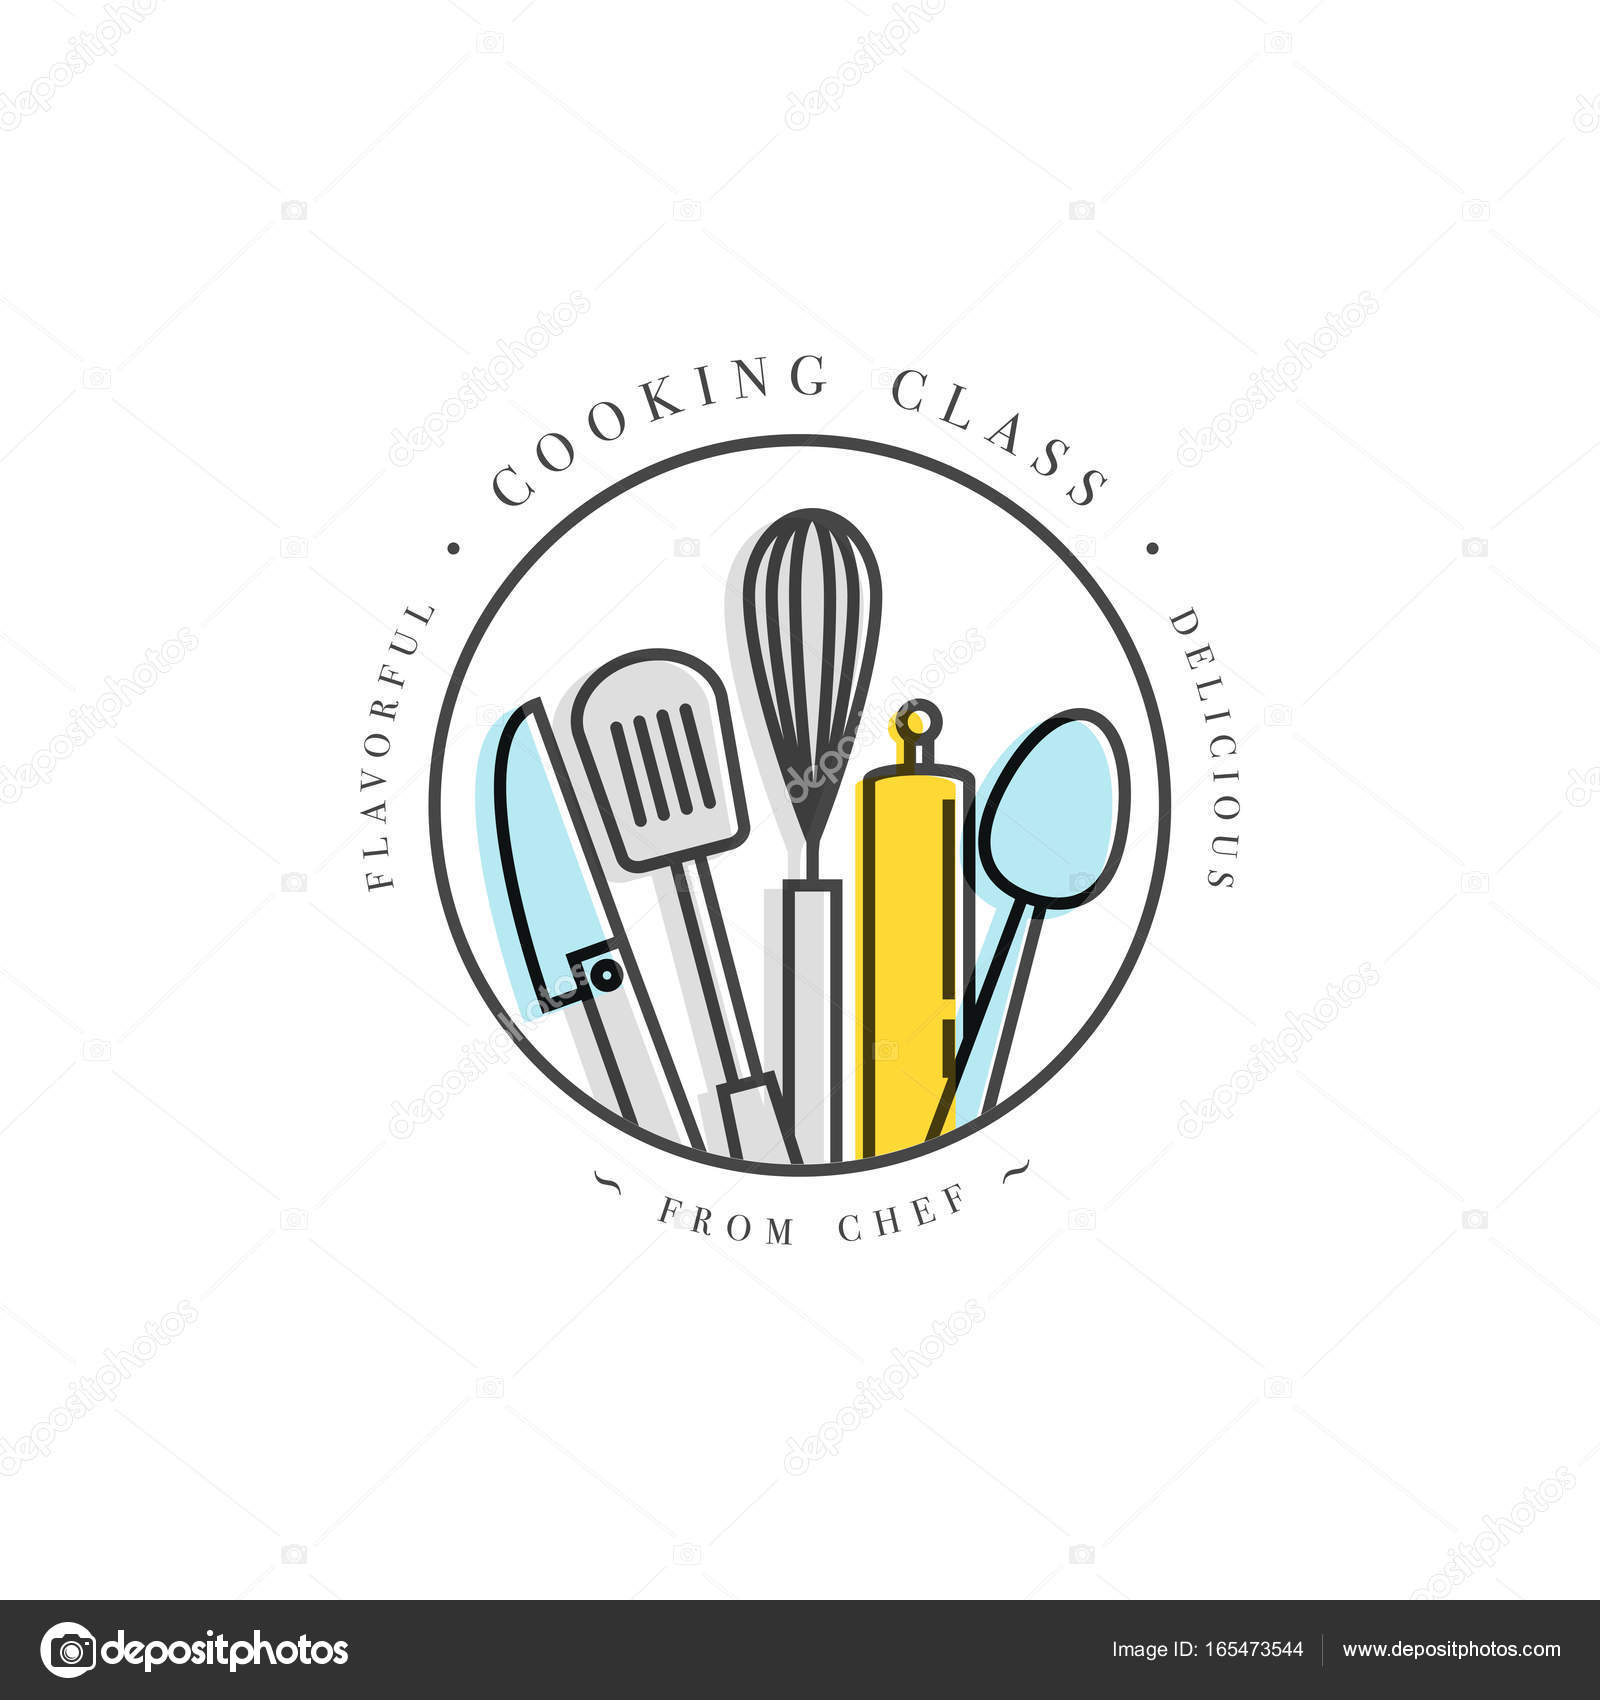 Cooking class linear design elements kitchen emblems symbols cooking class linear design element kitchen emblem symbol icon or food studio label cooking courses sign template or logo identity culinary school ccuart Image collections